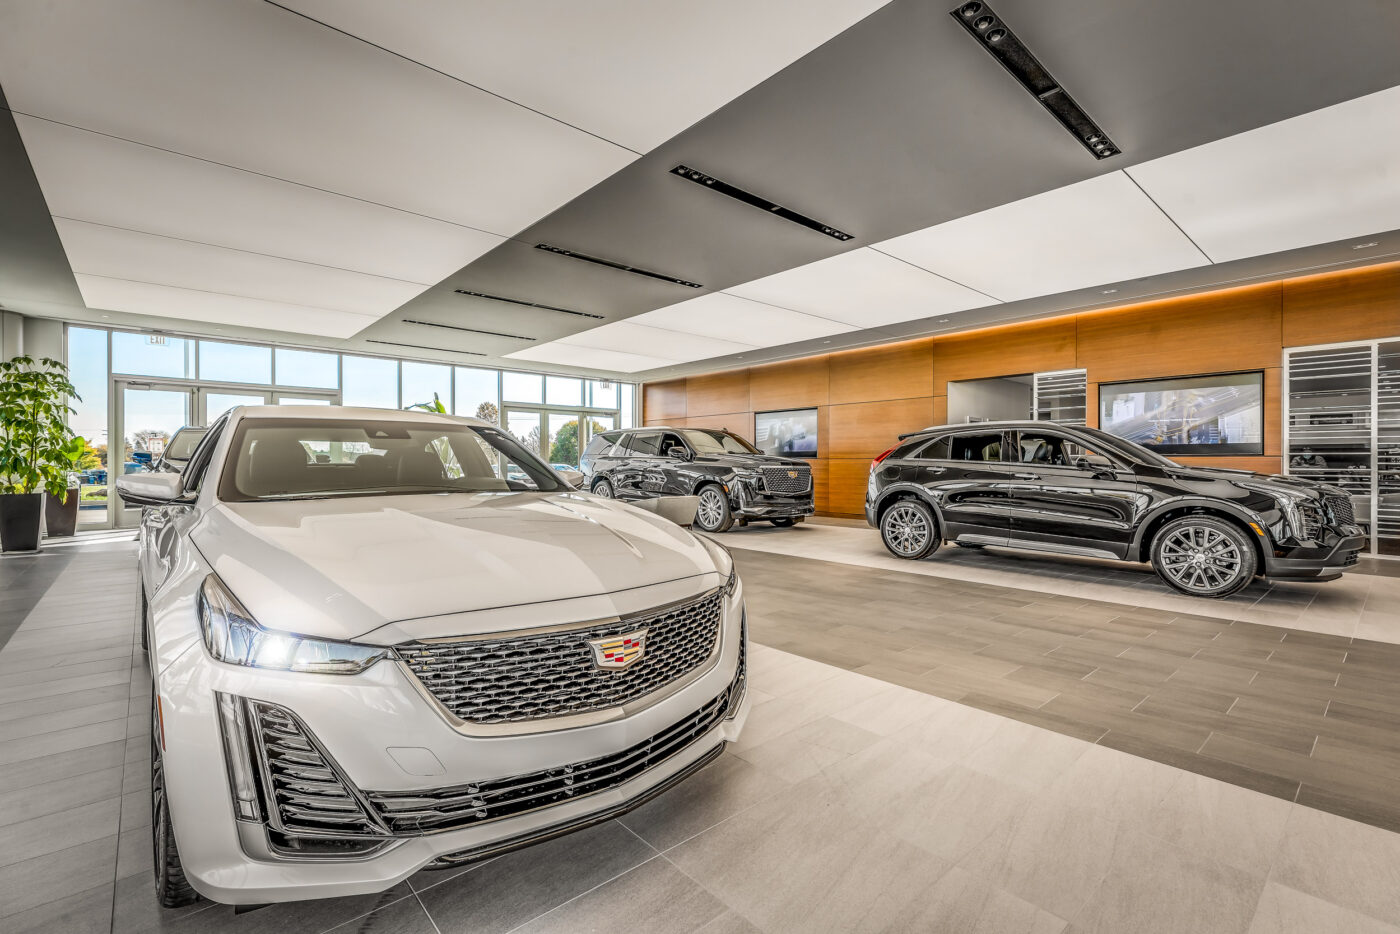 Architectural Photography of Shaheen Cadillac in Lansing, MI